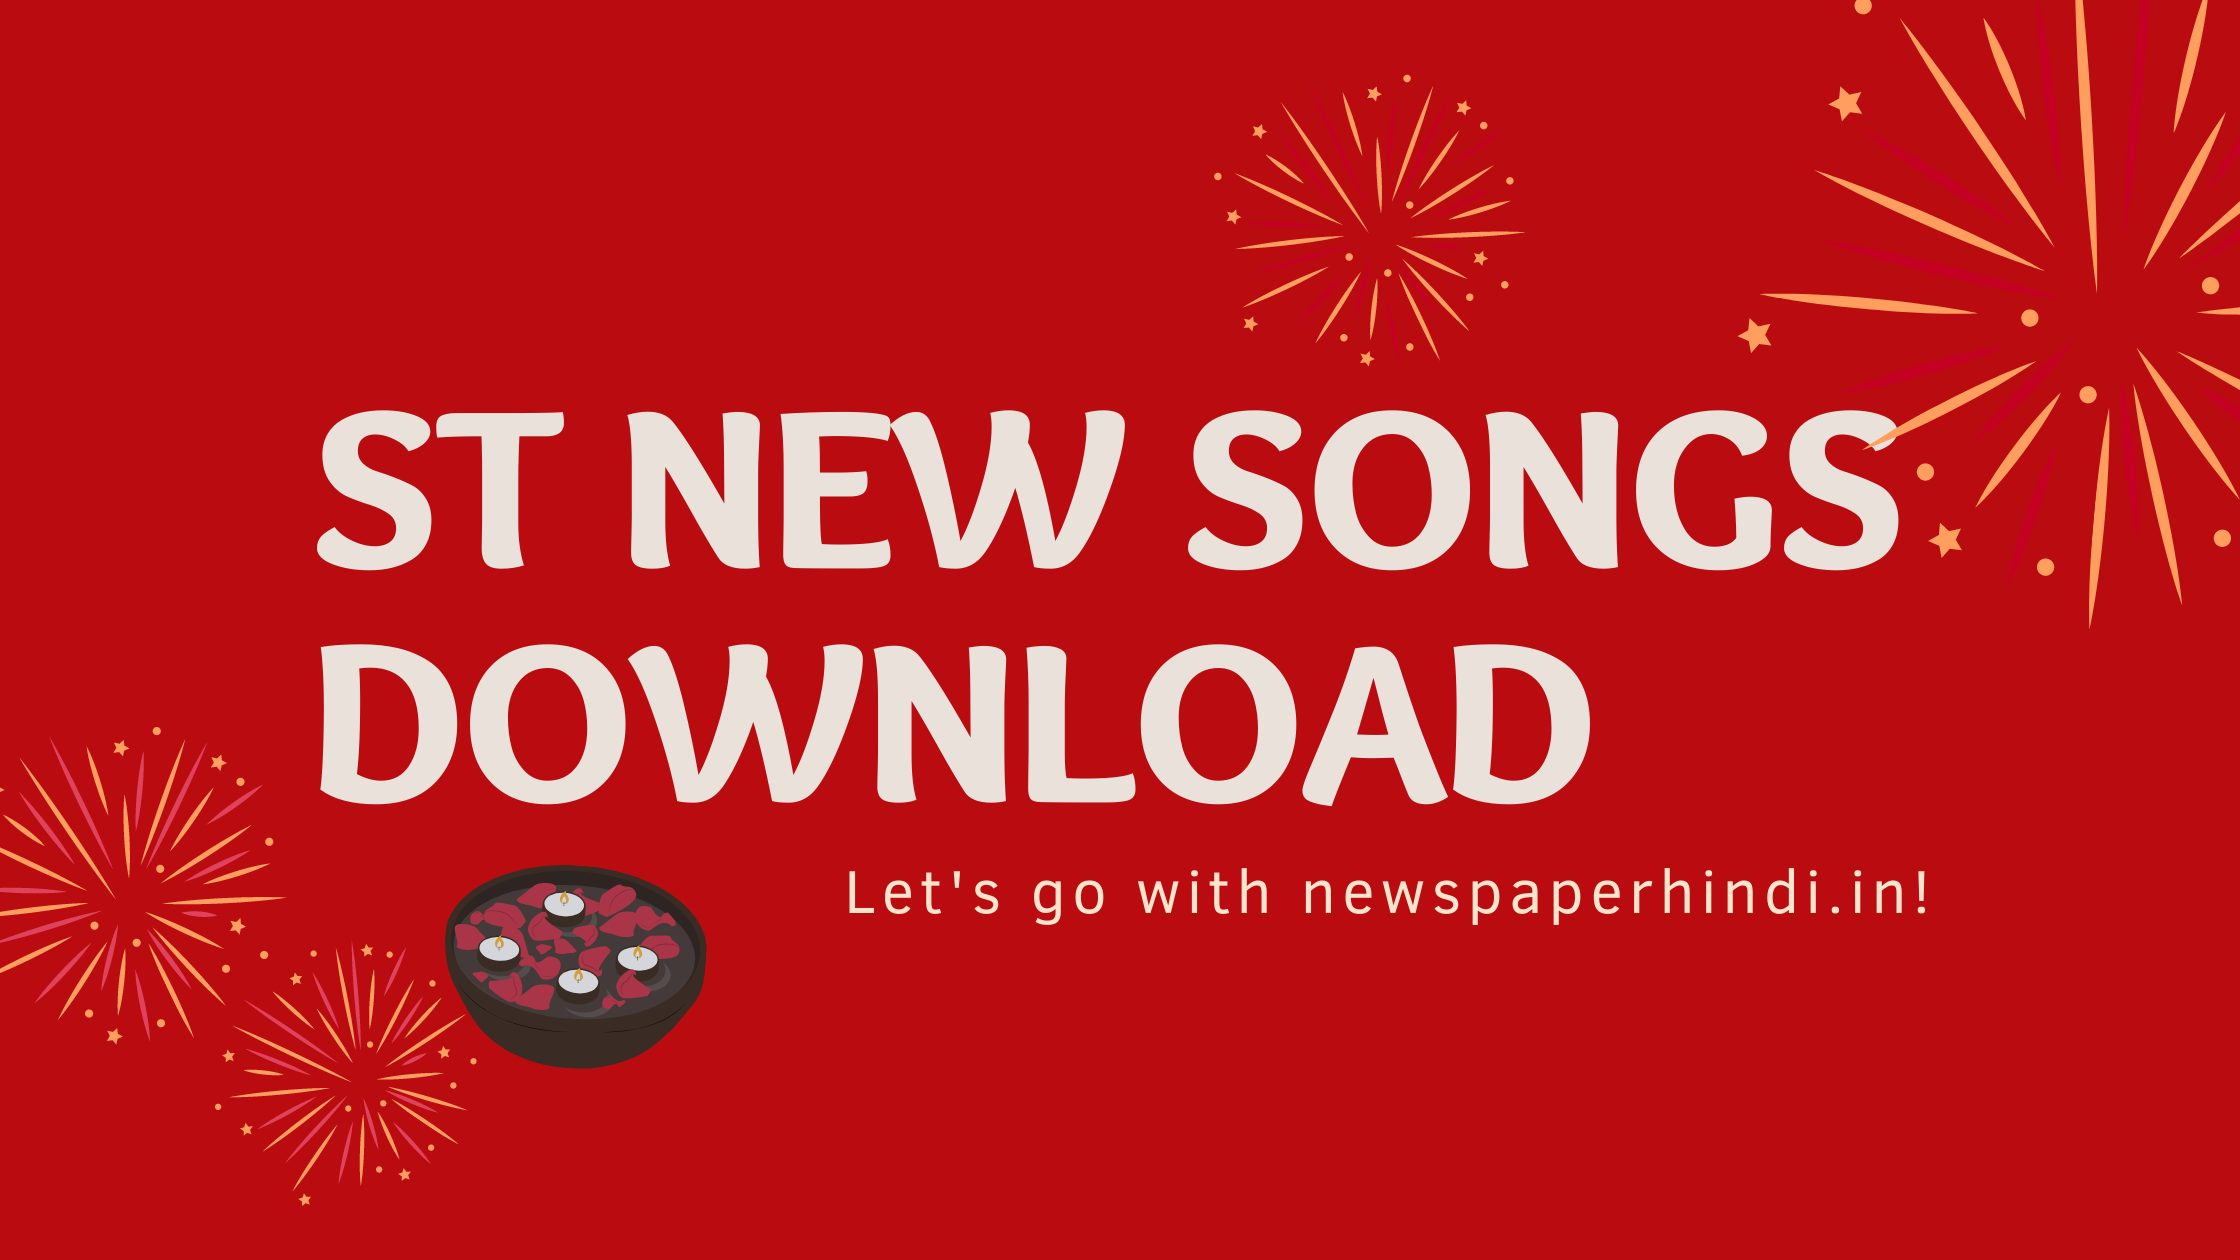 St new songs download